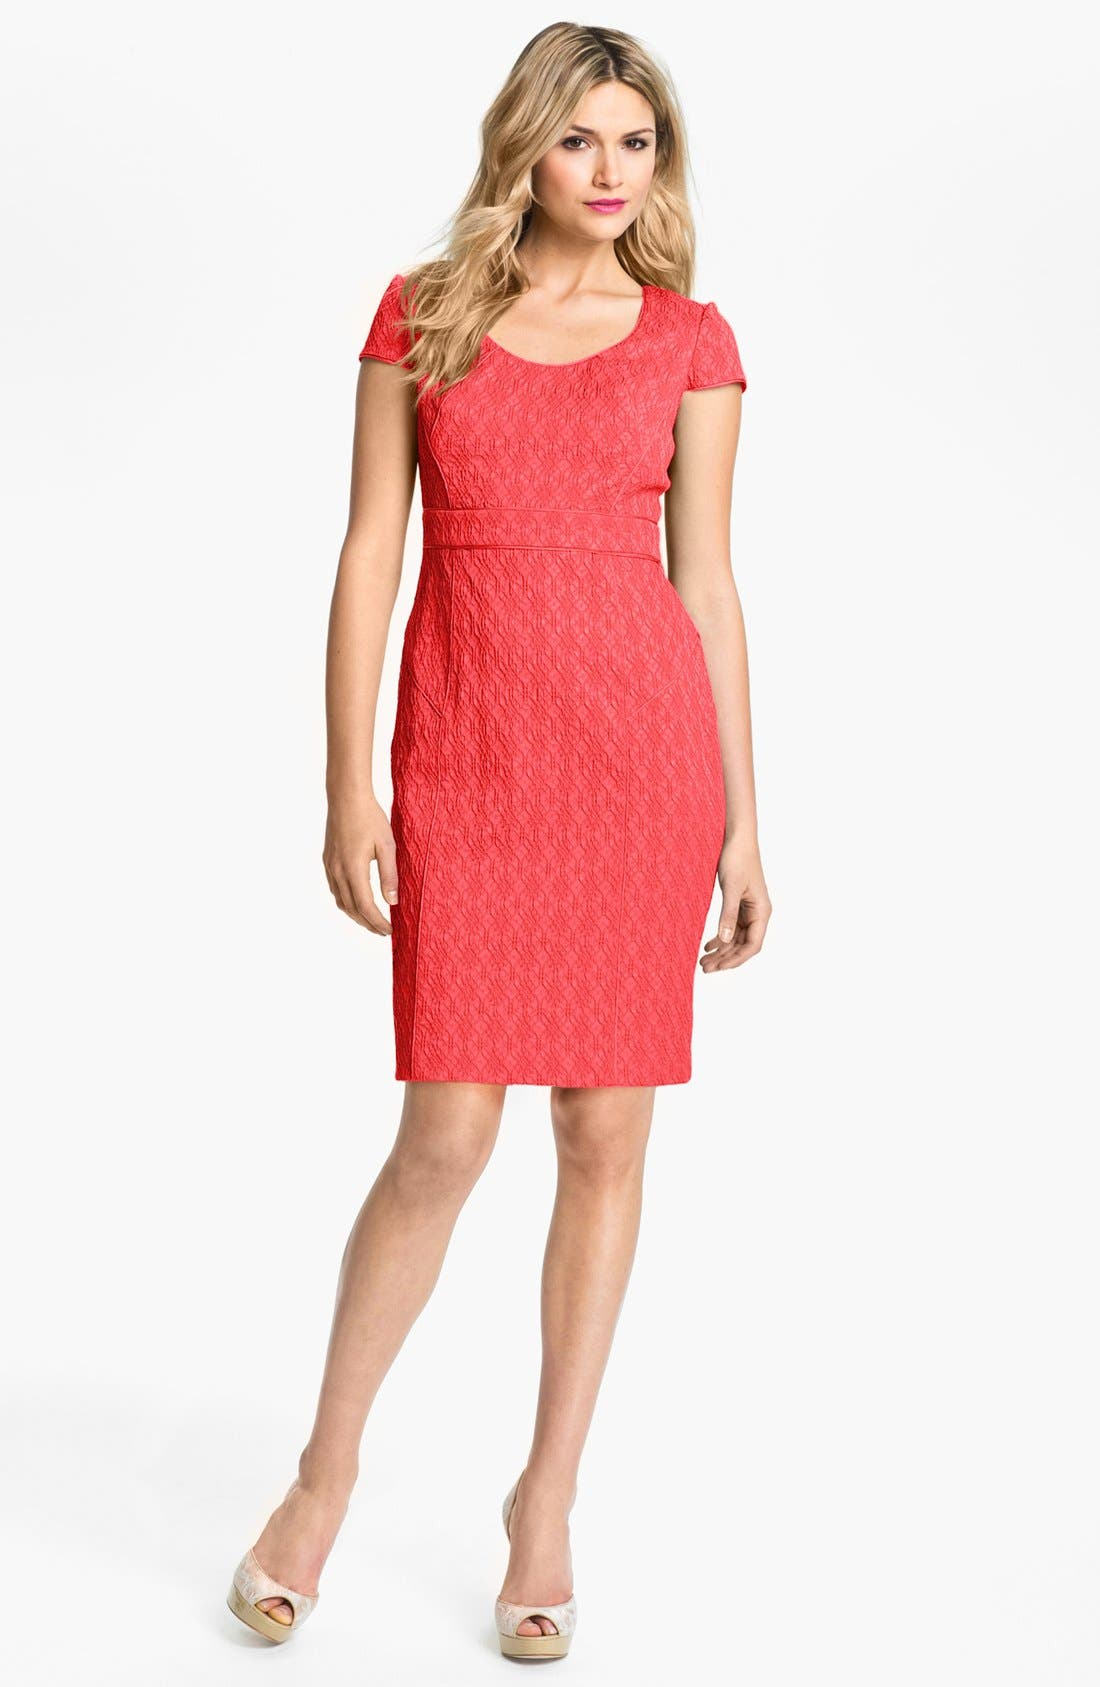 Alternate Image 1 Selected - Adrianna Papell Jacquard Sheath Dress